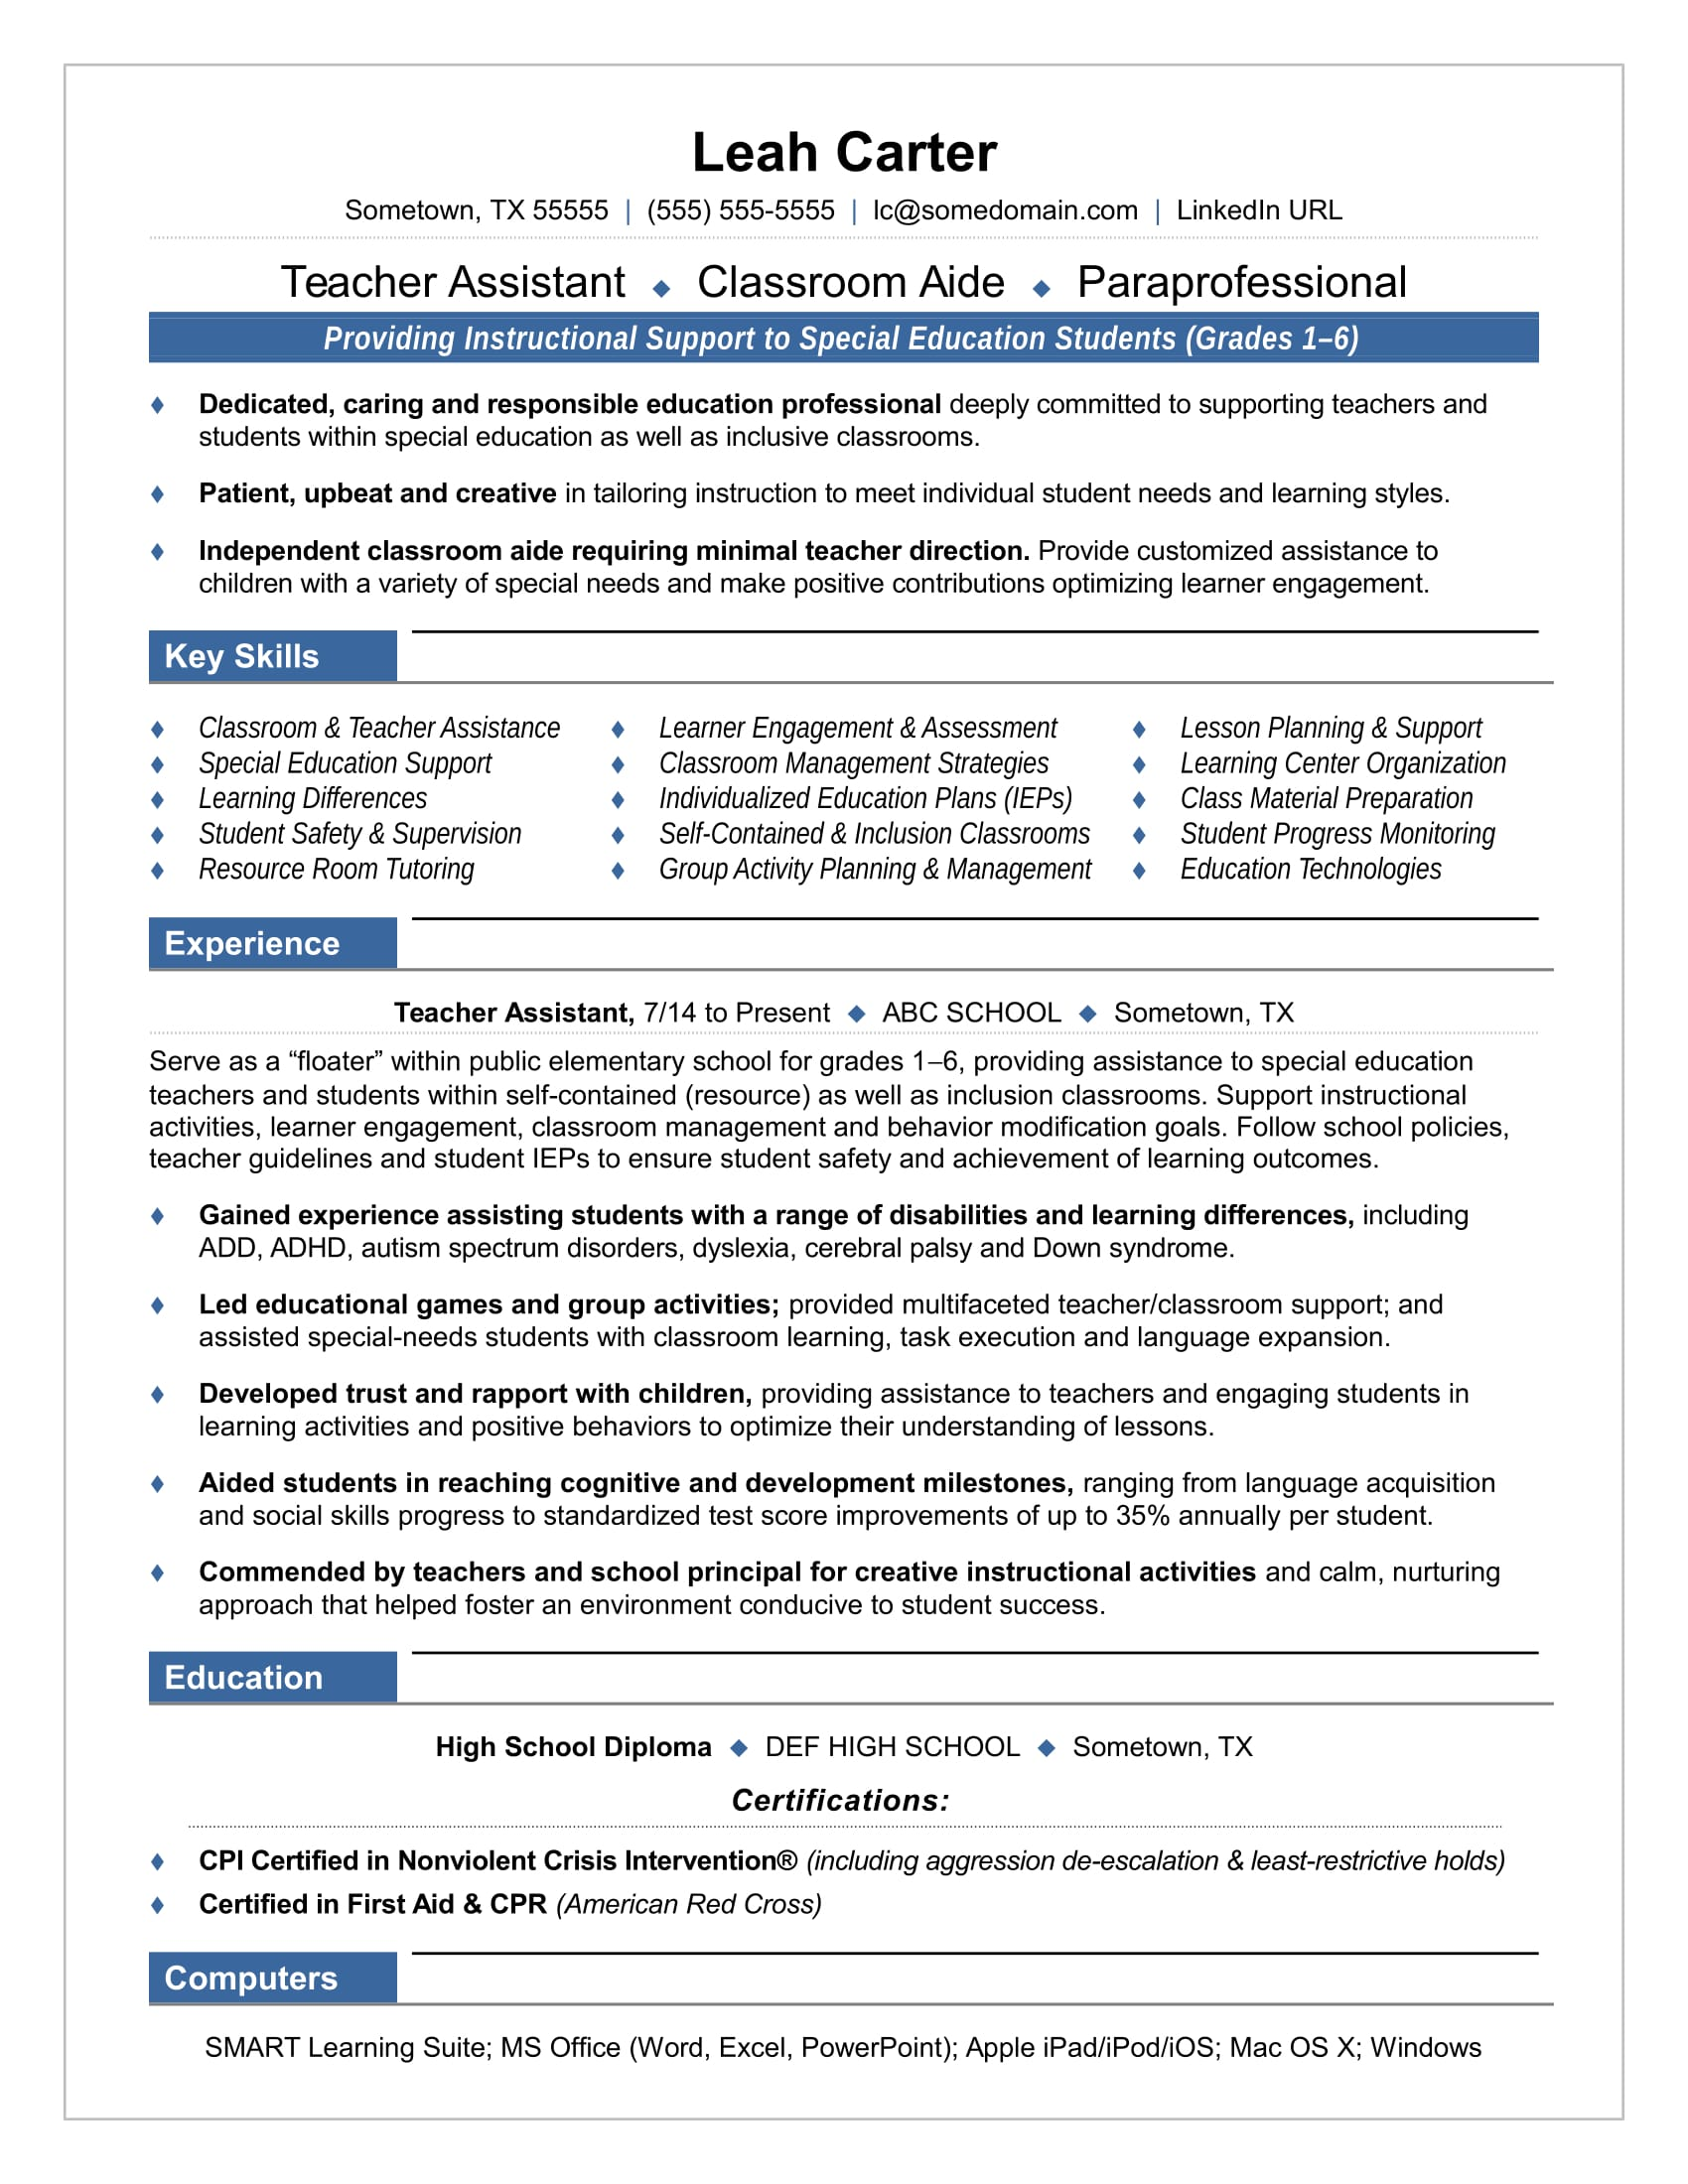 Superior Teacher Assistant Resume Sample  Instructional Assistant Resume